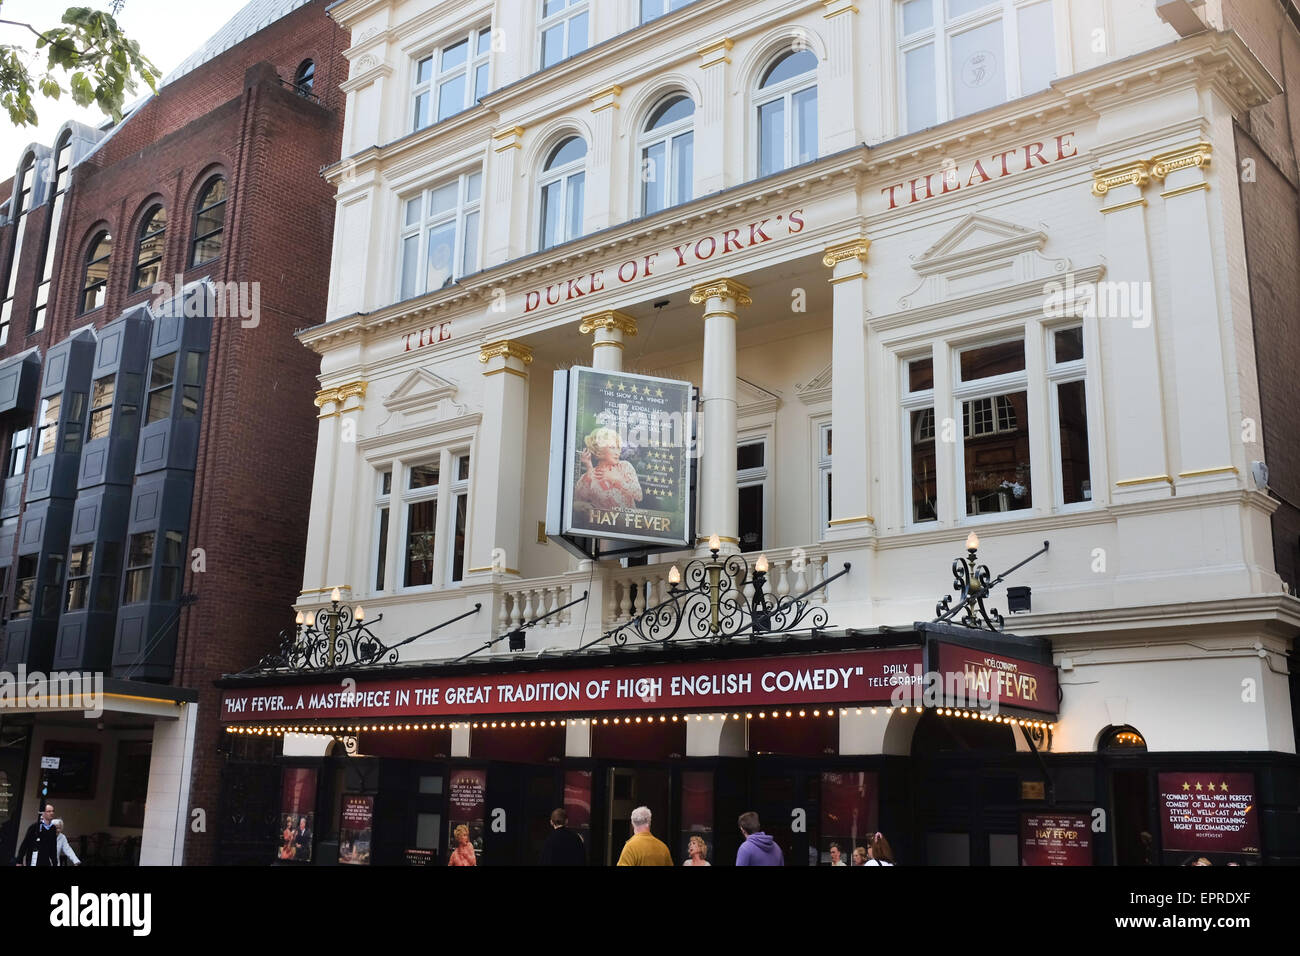 The Duke of York's Theatre in London, England, showing Hay Fever. - Stock Image